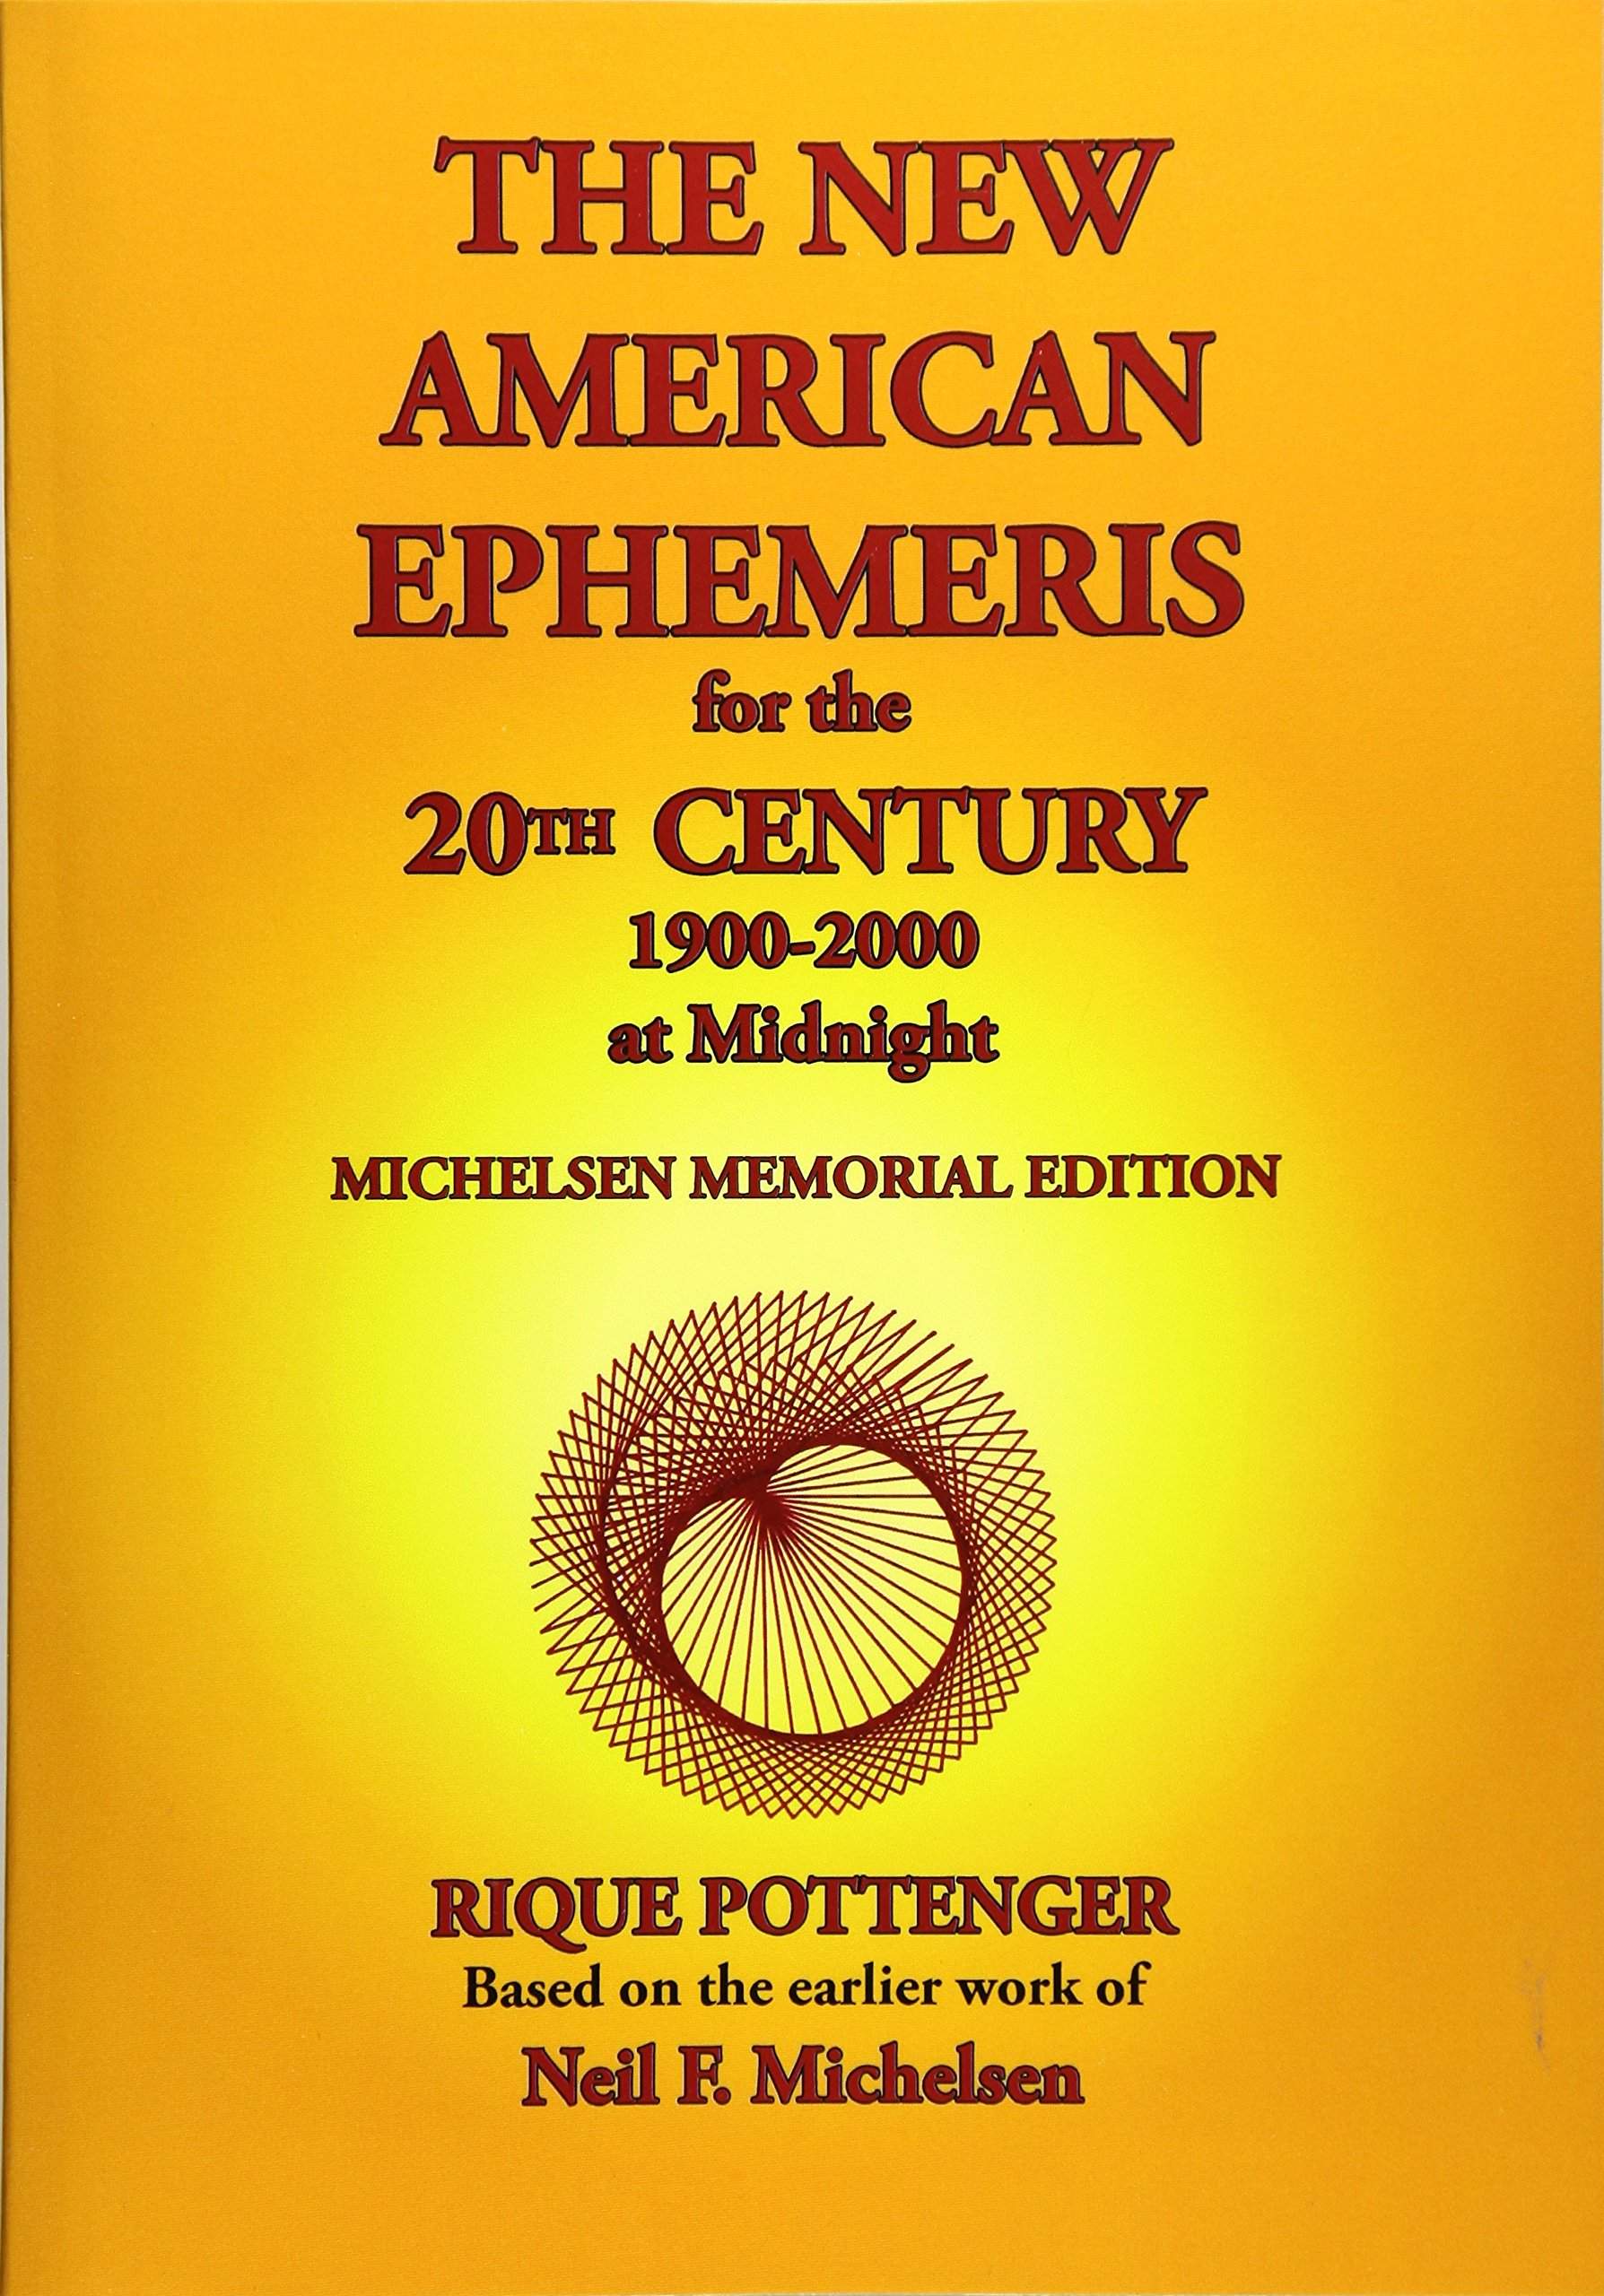 Download The New American Ephemeris for the 20th Century, 1900-2000 at Midnight PDF